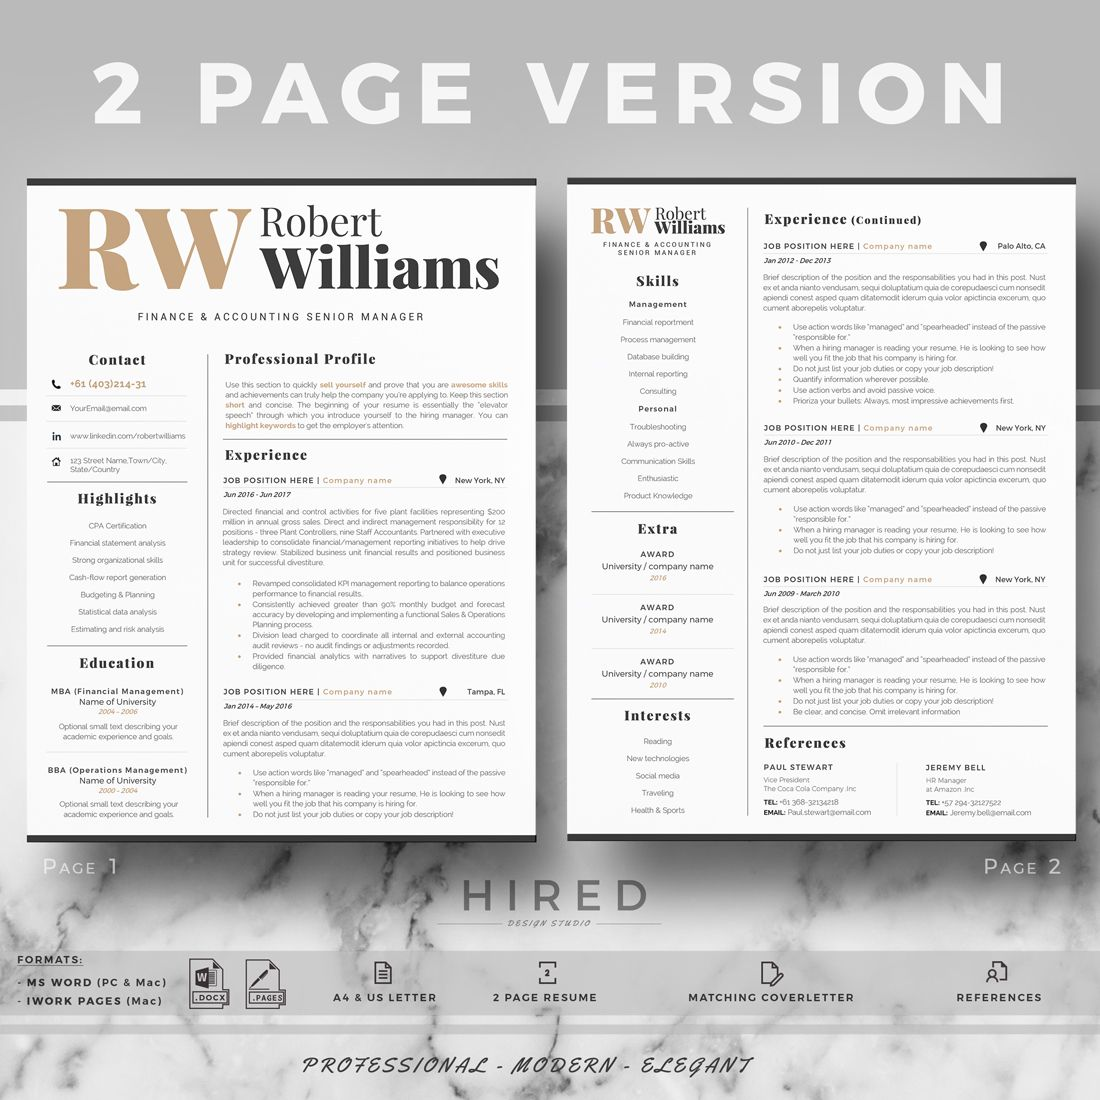 Cv Writing Mac The Online Resume Builder You Deserve